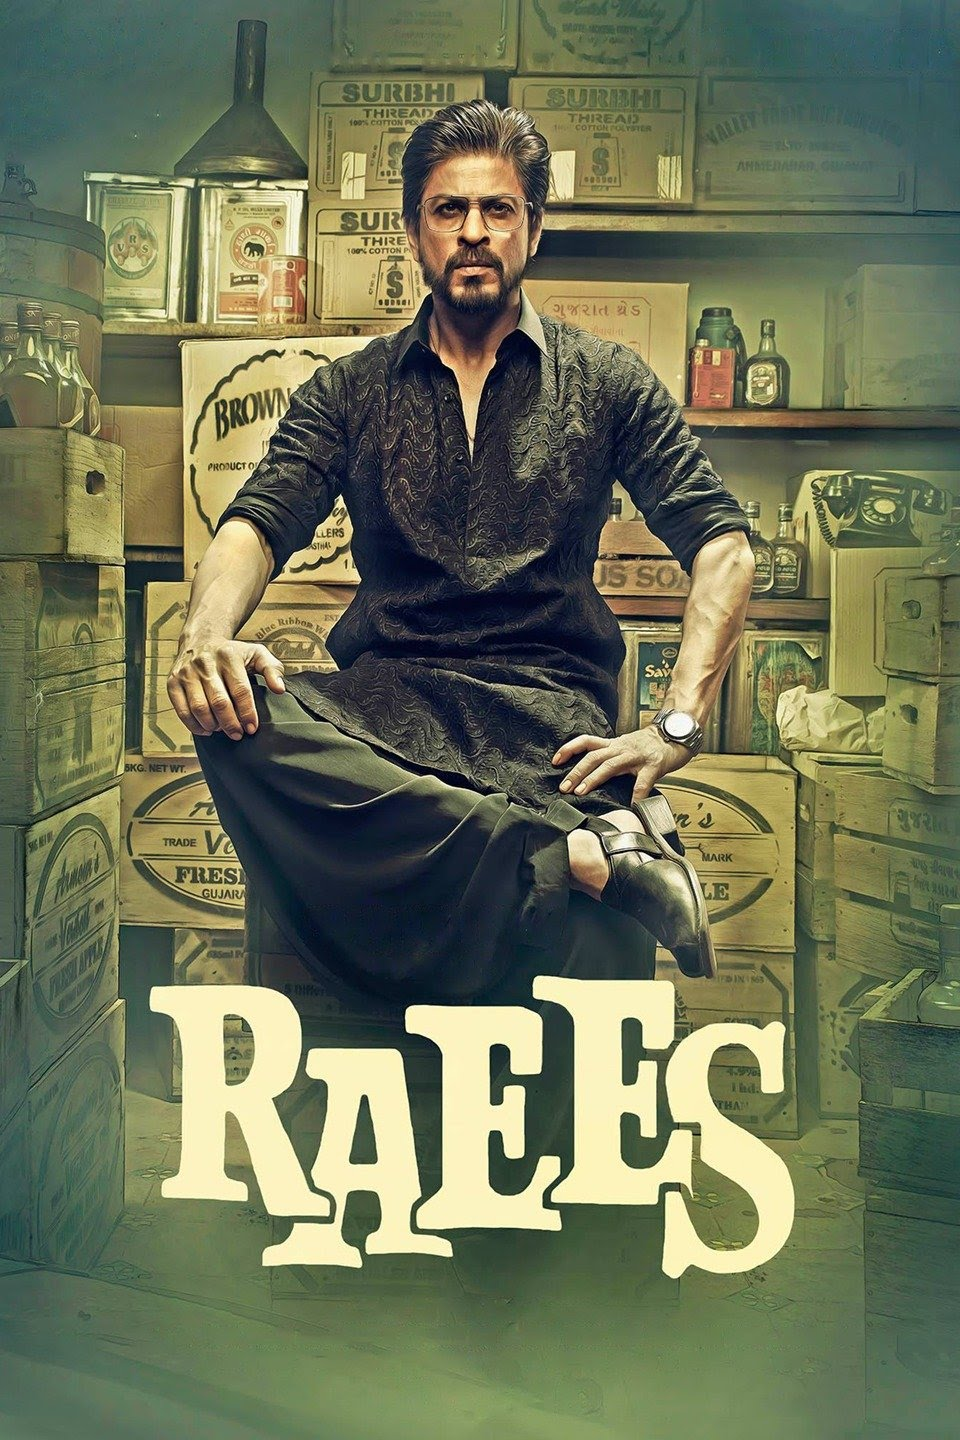 Raees (2017) 1080p BluRay x265 HEVC 10bit AAC – [Walter]